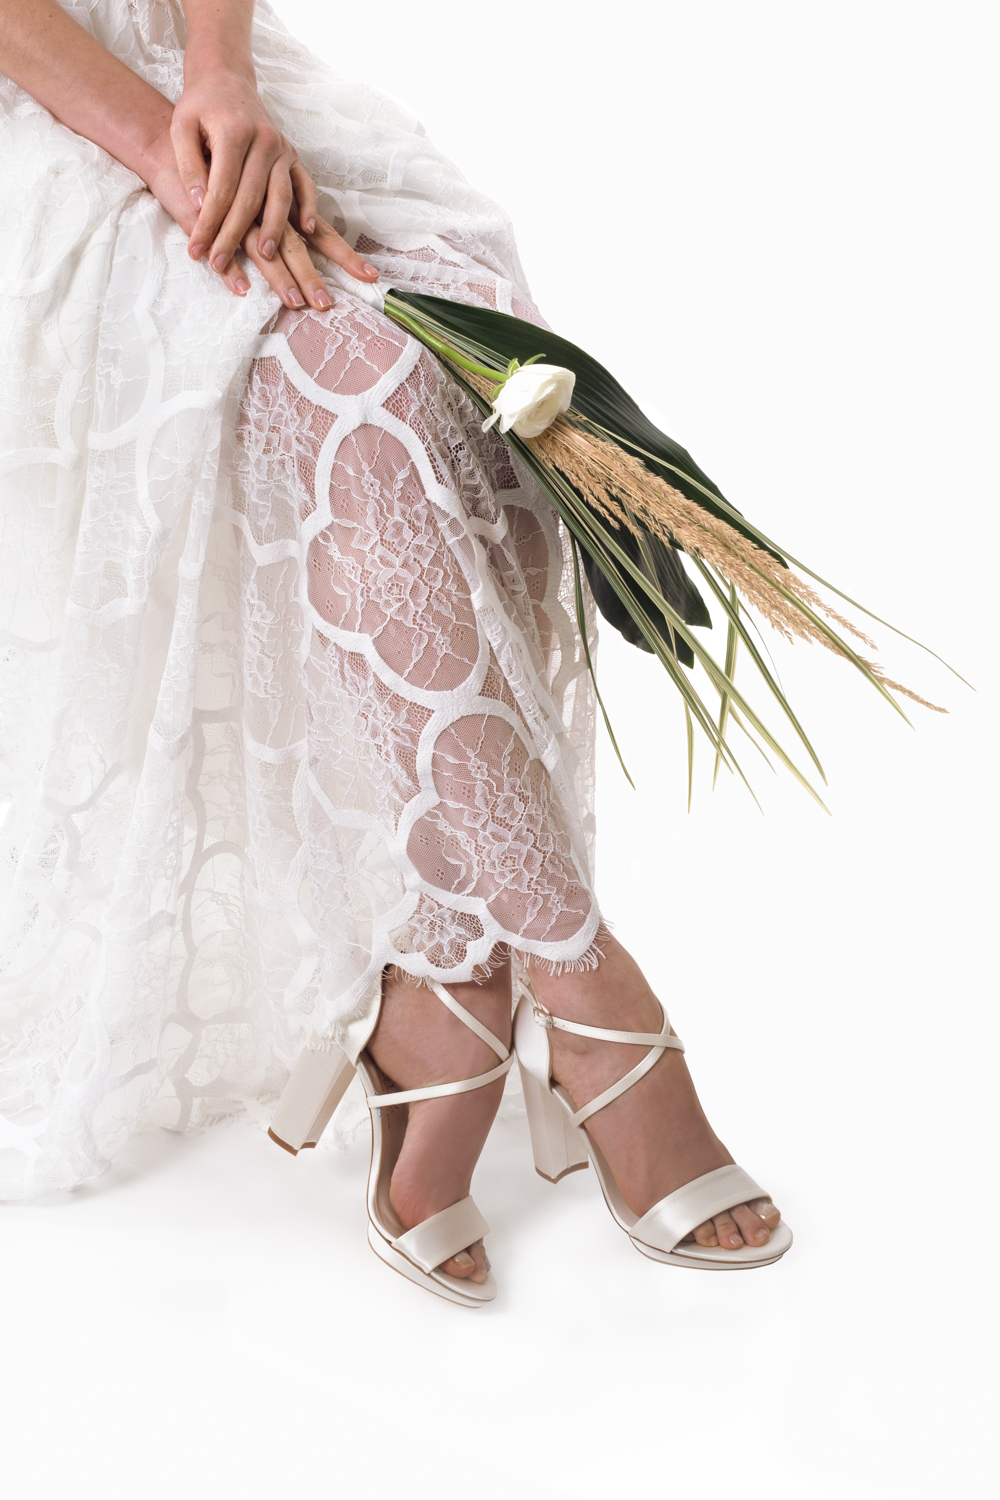 Mediterranean inspired boho beach wedding styled shoot, lace, floaty dress by Love Spell, shoes by Harriet Wilde